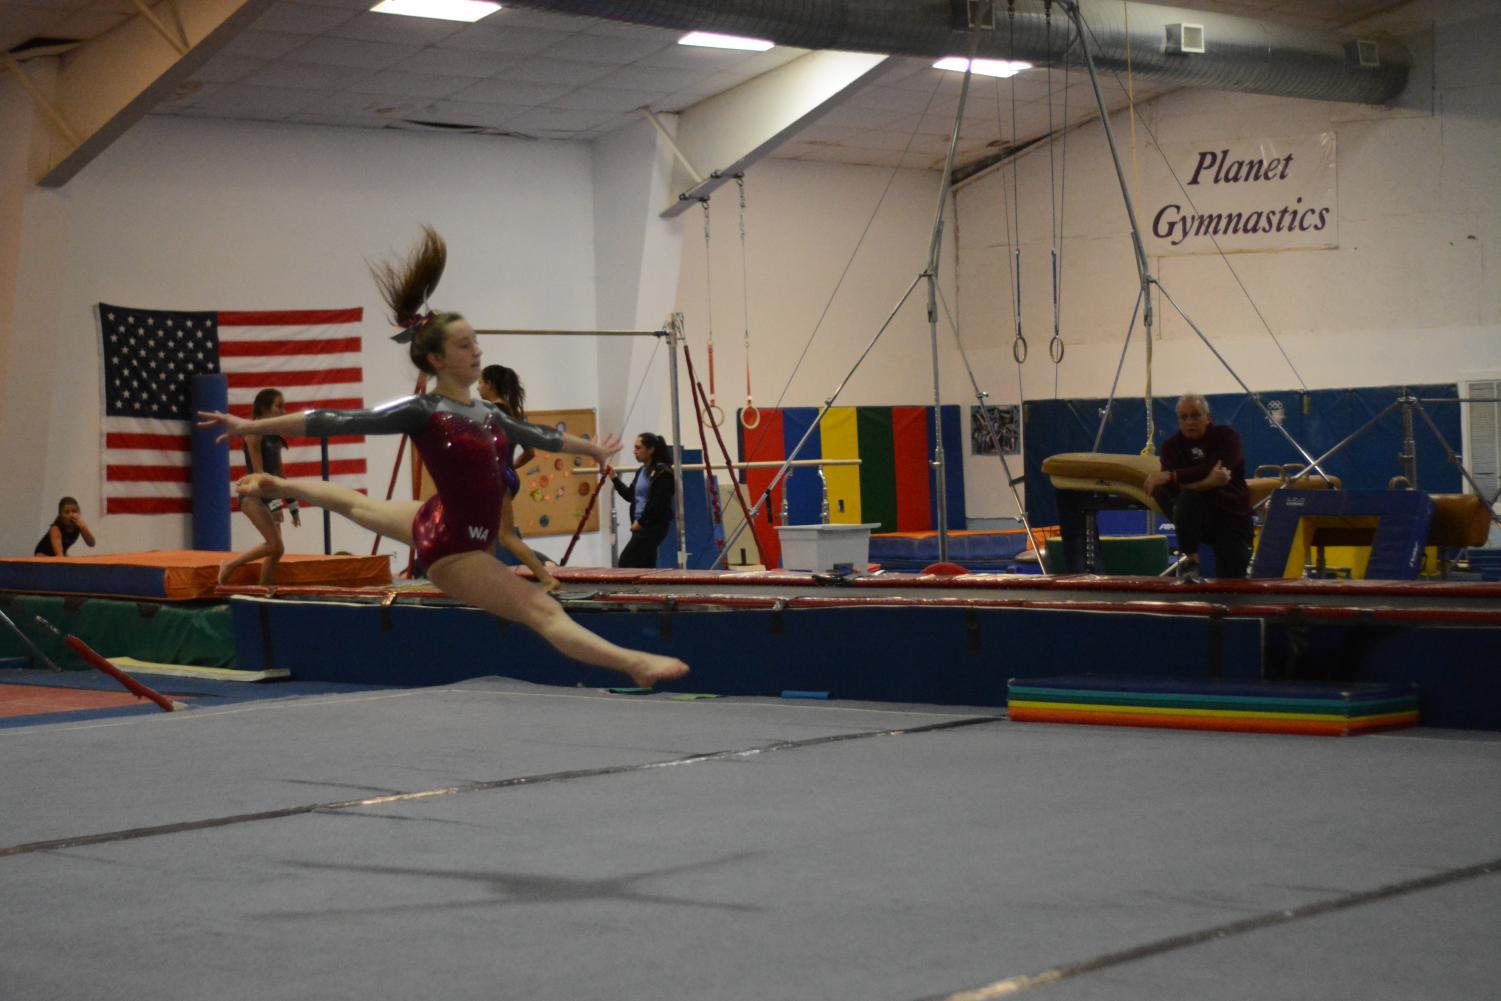 Sophomore+Kaitlin+Murphy+doing+a+leap+during+her+floor+event.